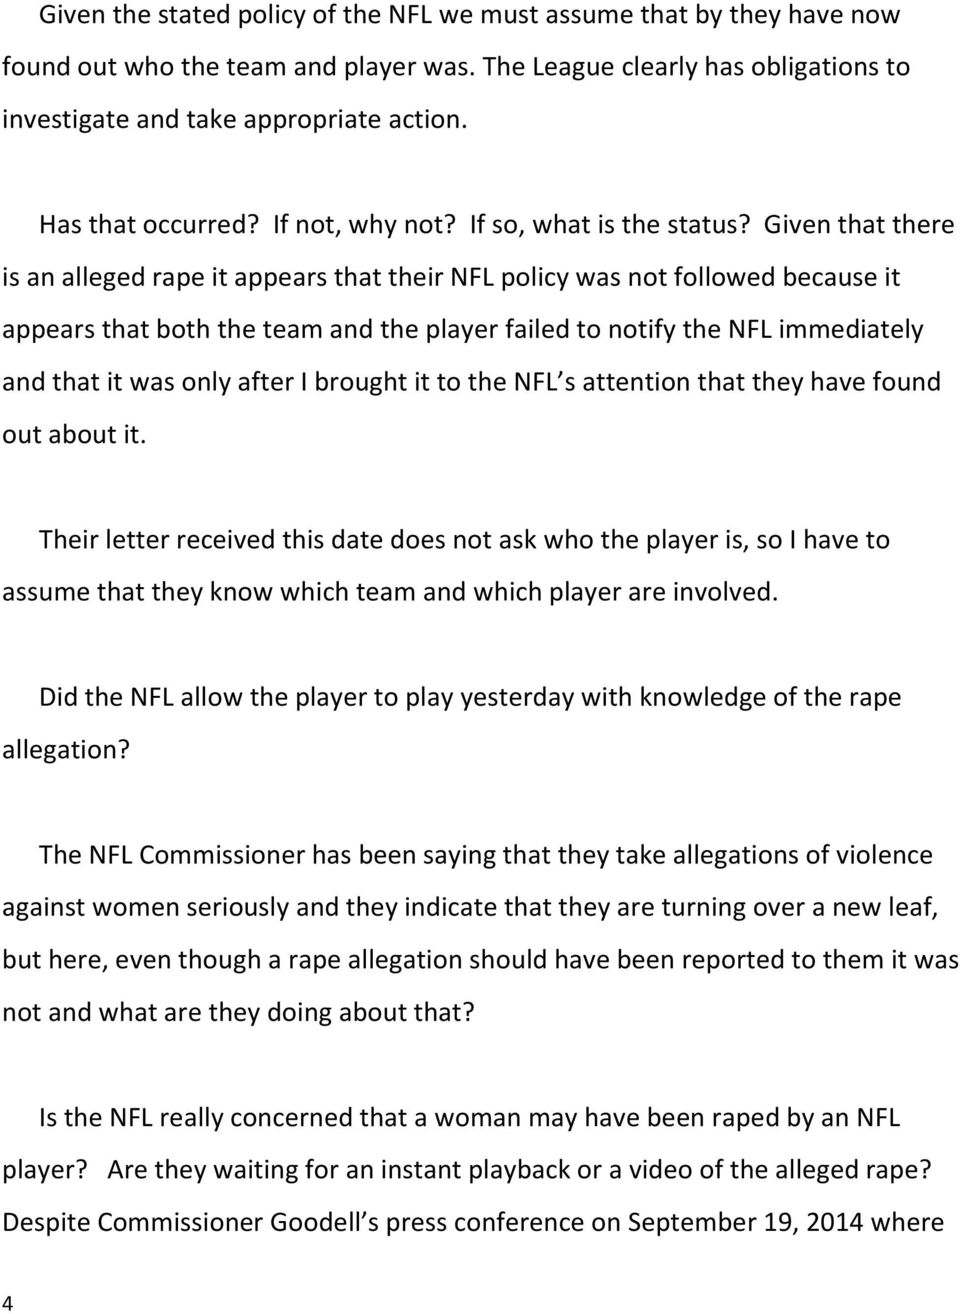 Given that there is an alleged rape it appears that their NFL policy was not followed because it appears that both the team and the player failed to notify the NFL immediately and that it was only